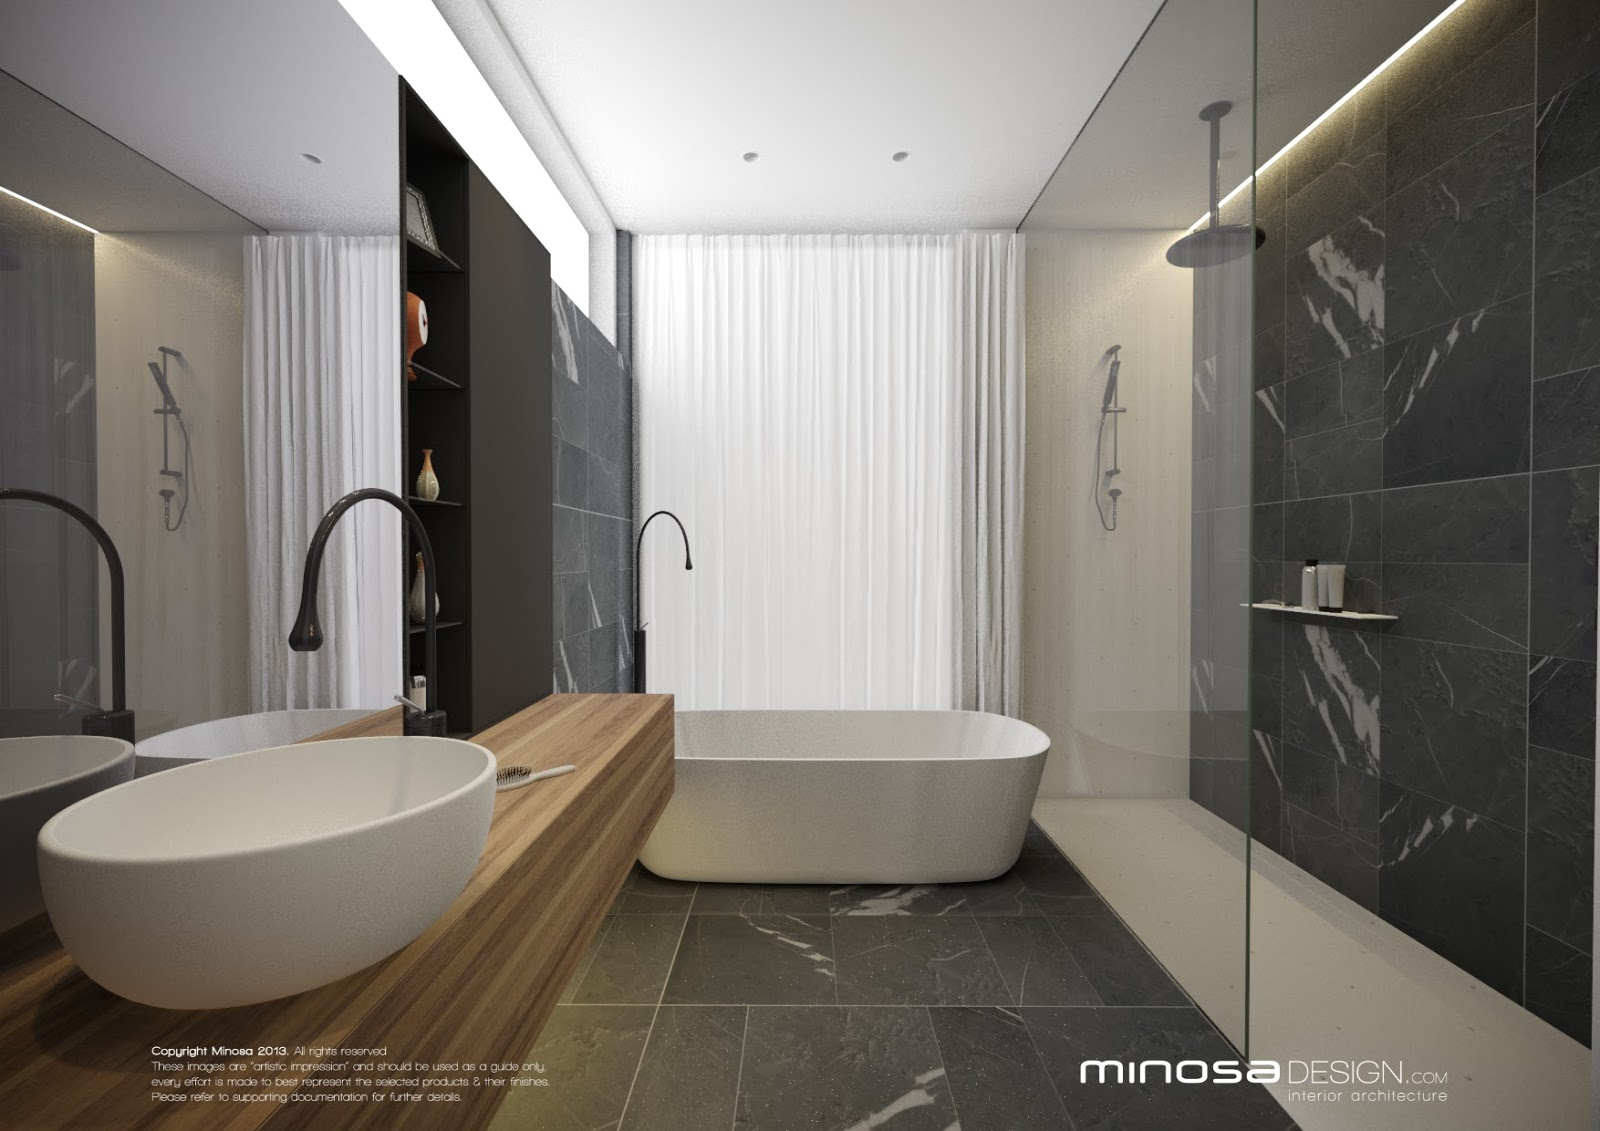 Best Kitchen Gallery: Minosa Modern Bathroom Design To Share of New Modern Bathroom Designs  on rachelxblog.com